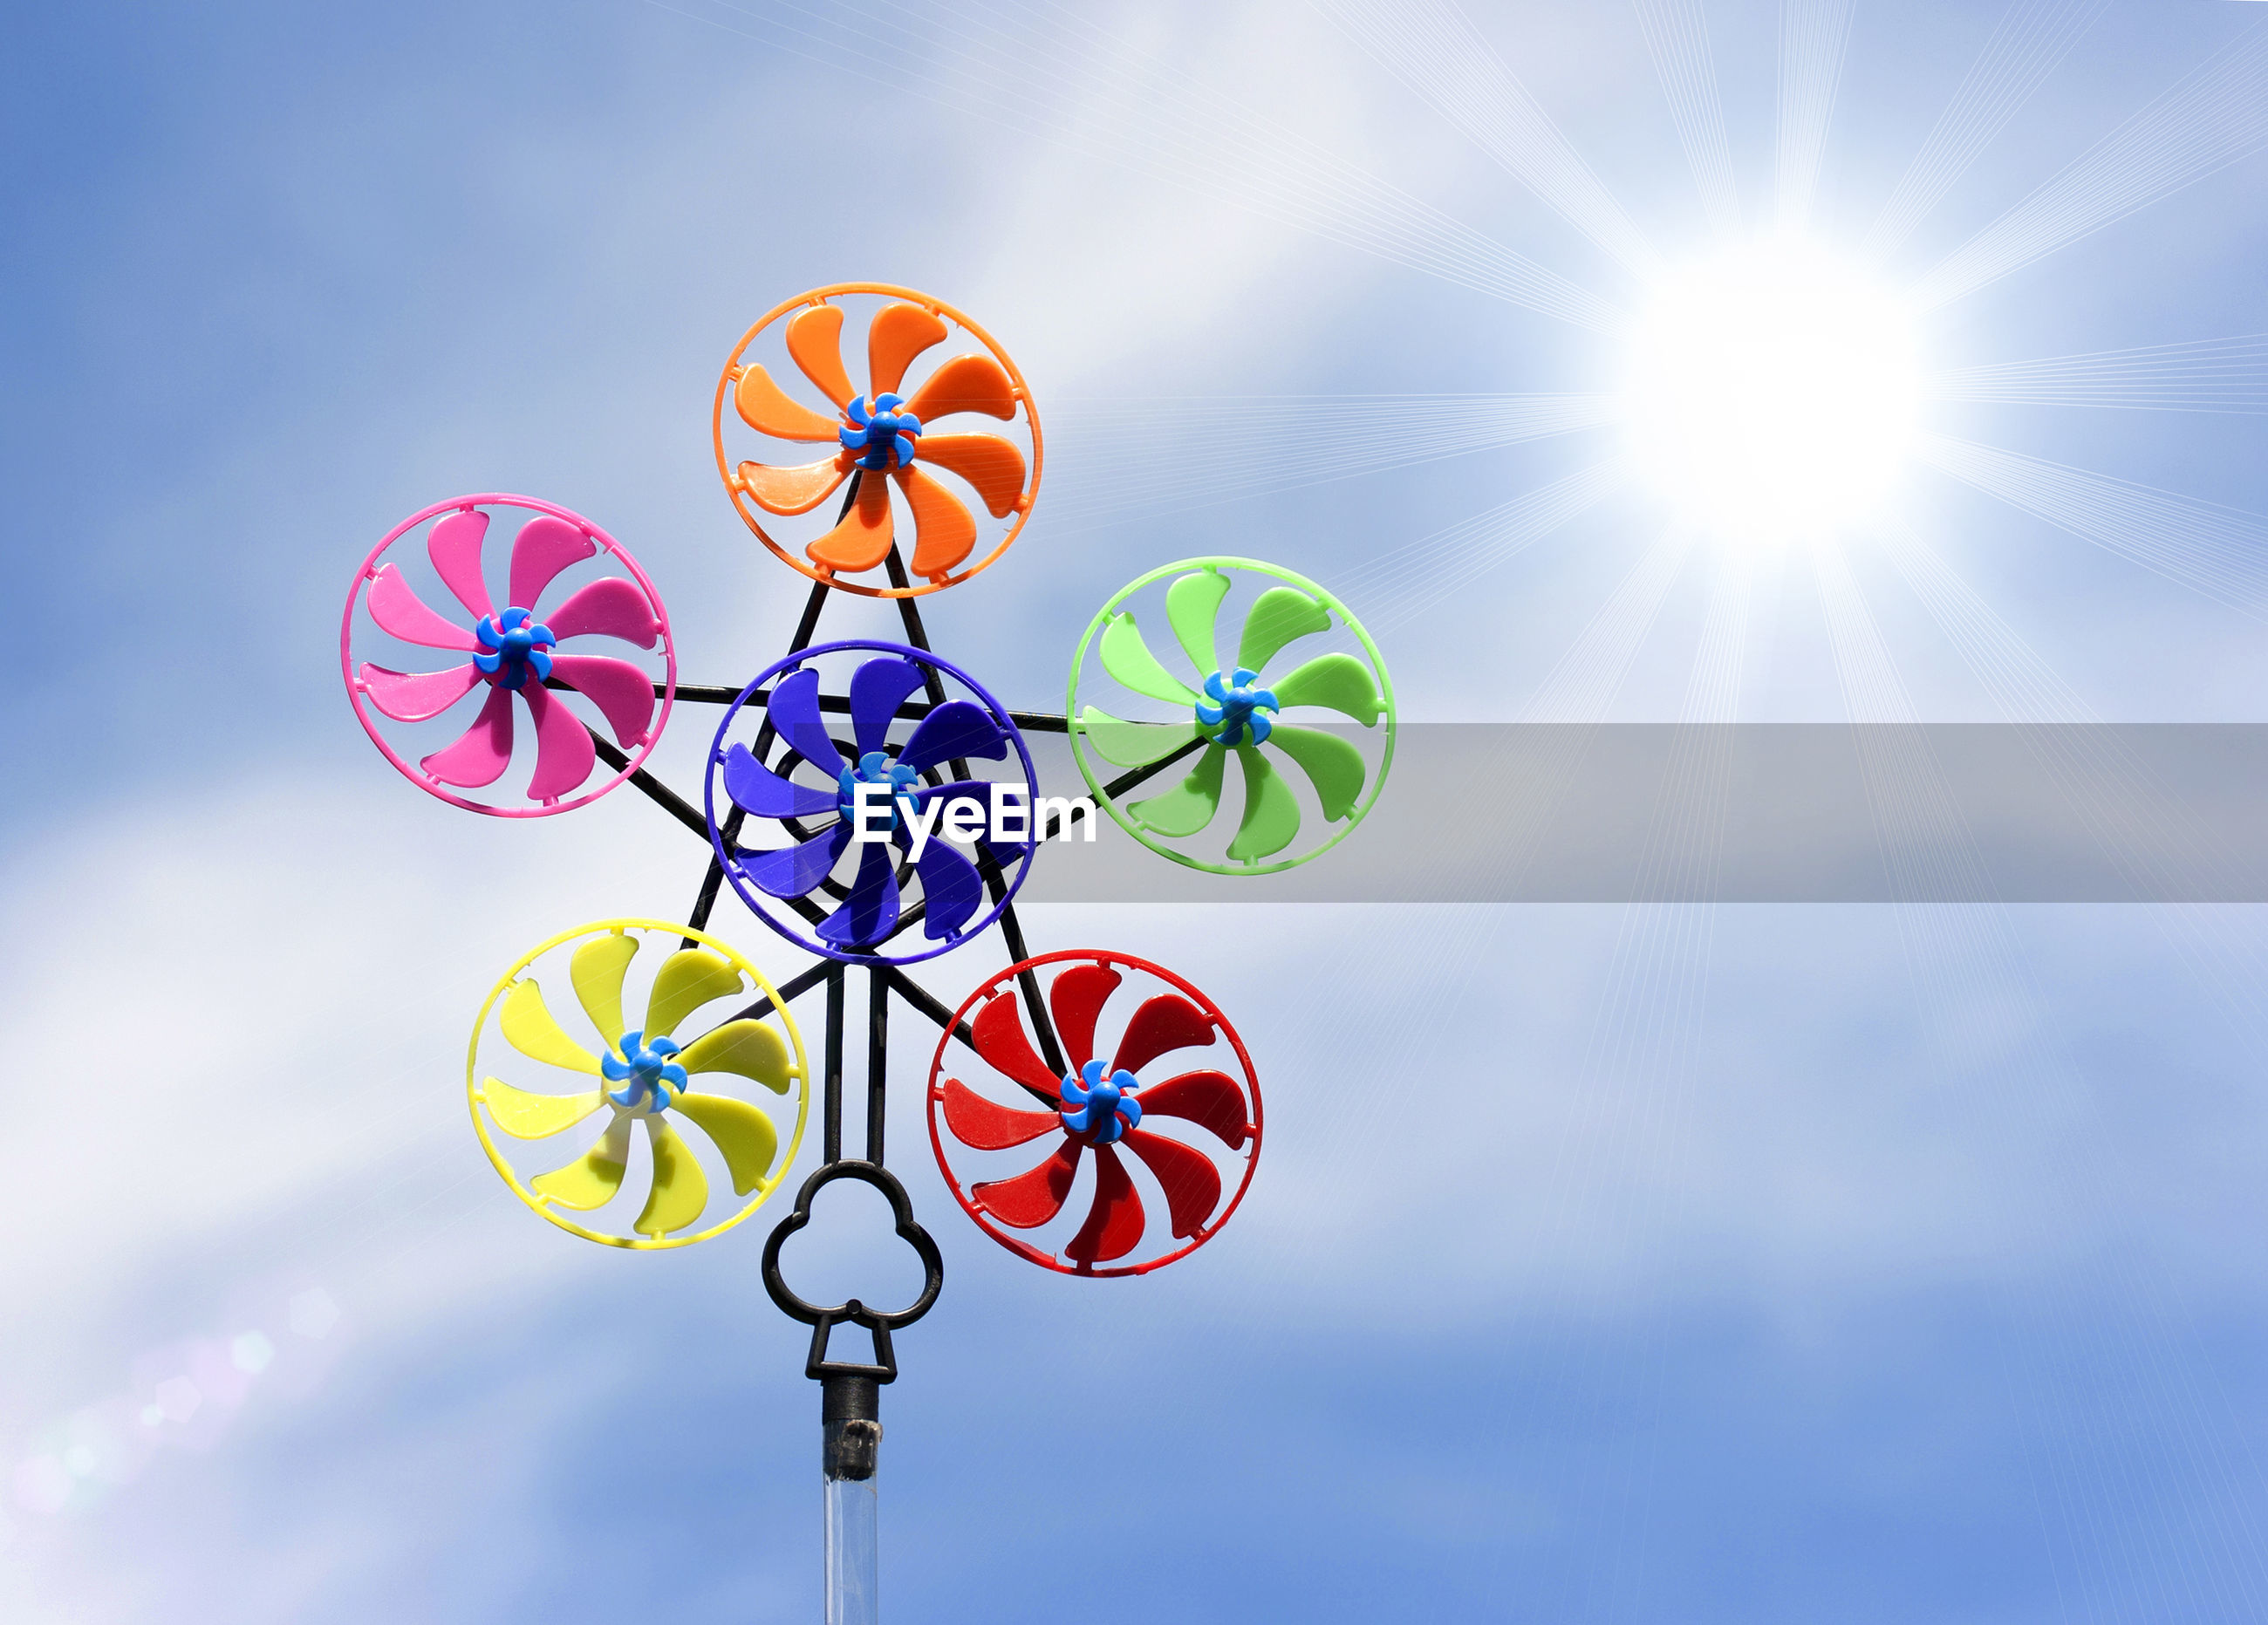 Low angle view of colorful pinwheel toy against sky during sunny day